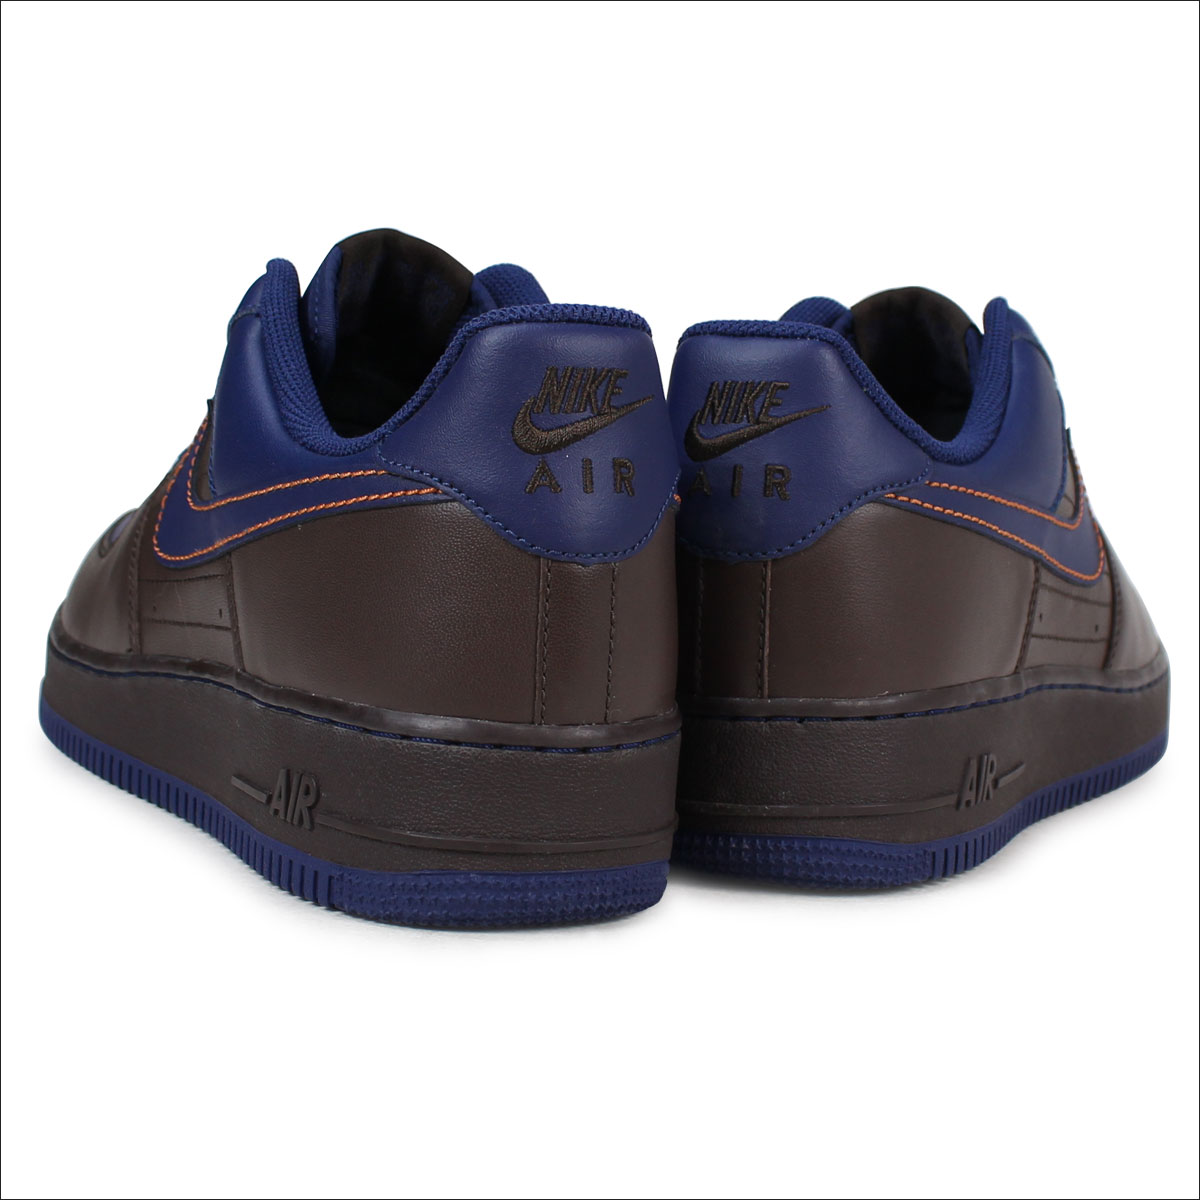 ALLSPORTS  NIKE AIR FORCE 1 LOW CB Nike air force 1 sneakers 453 f345cb7f4179